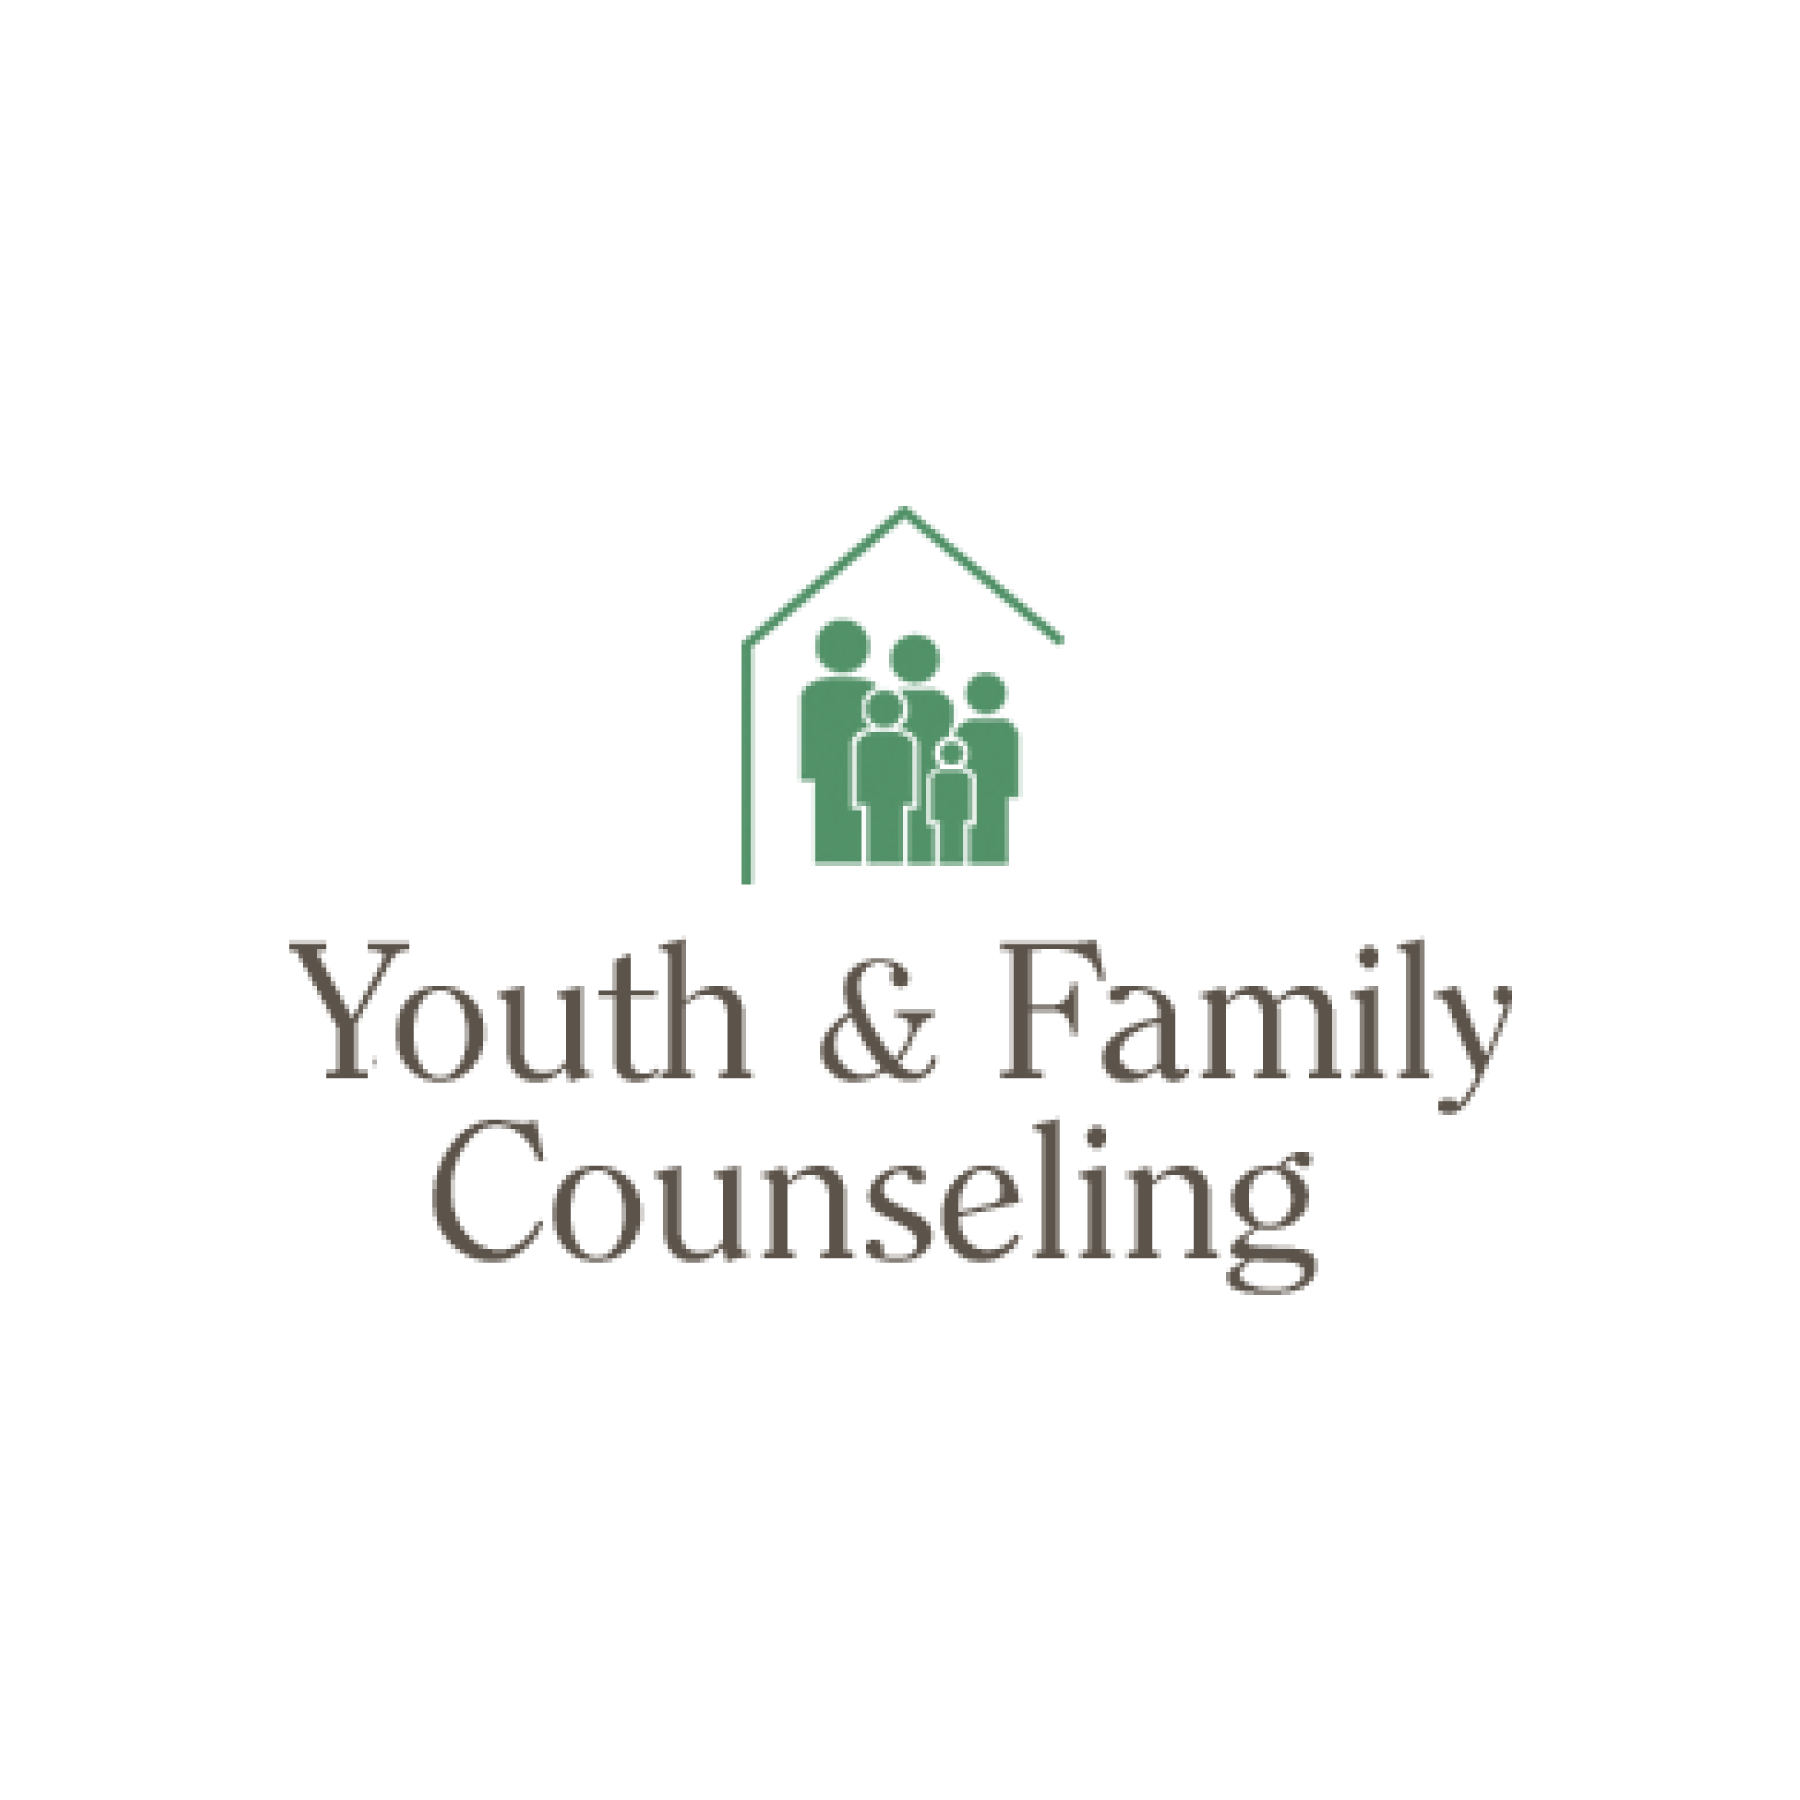 Youth-&-Family-Counseling